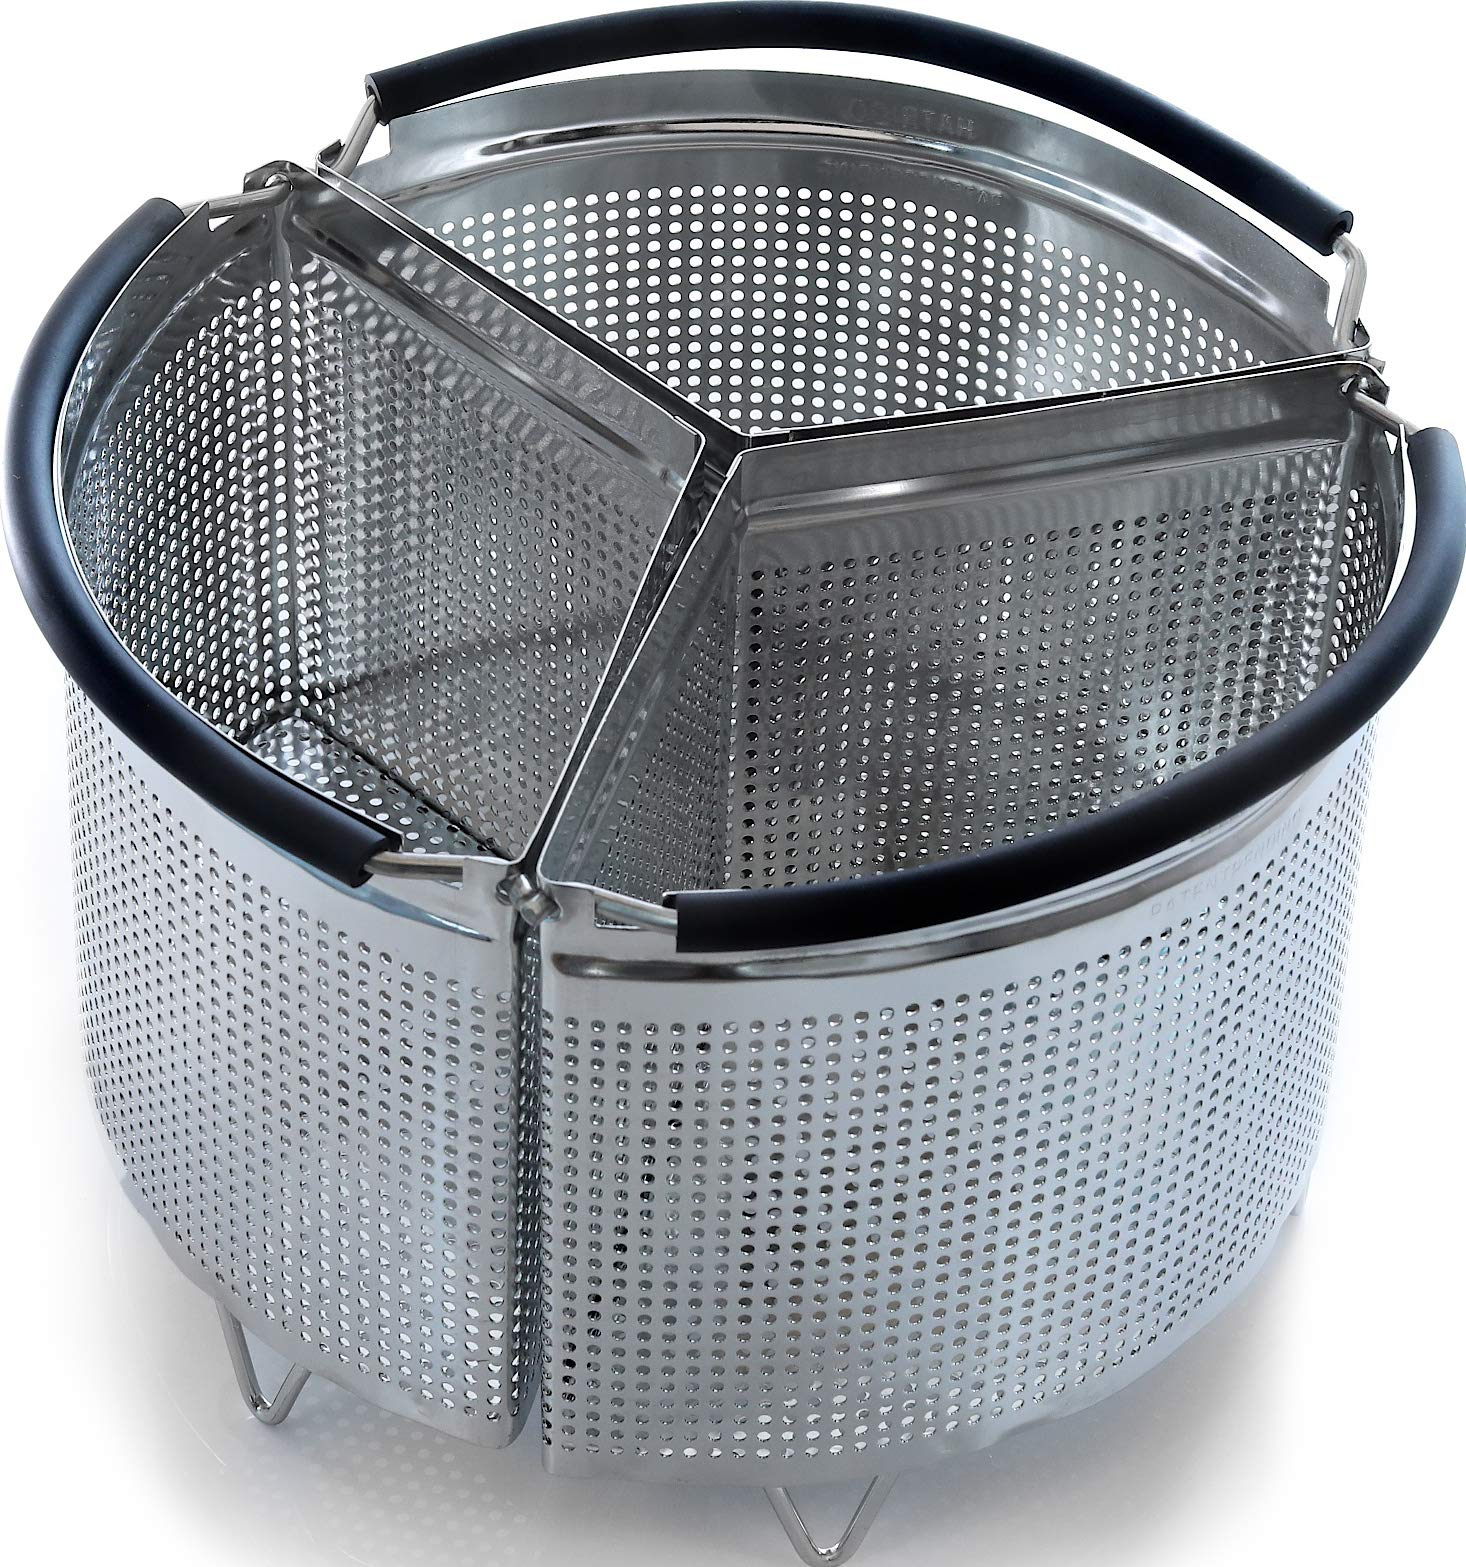 3-Piece Divided Steamer Basket for 3 Qt Pressure Cooker [6qt 8qt available] Compatible with Instant Pot Accessories Ninja Foodi Other Mullti Cookers, Strainer Insert Can Cook 3-in-1, for IP Mini 3 Qt by Hatrigo (Image #1)